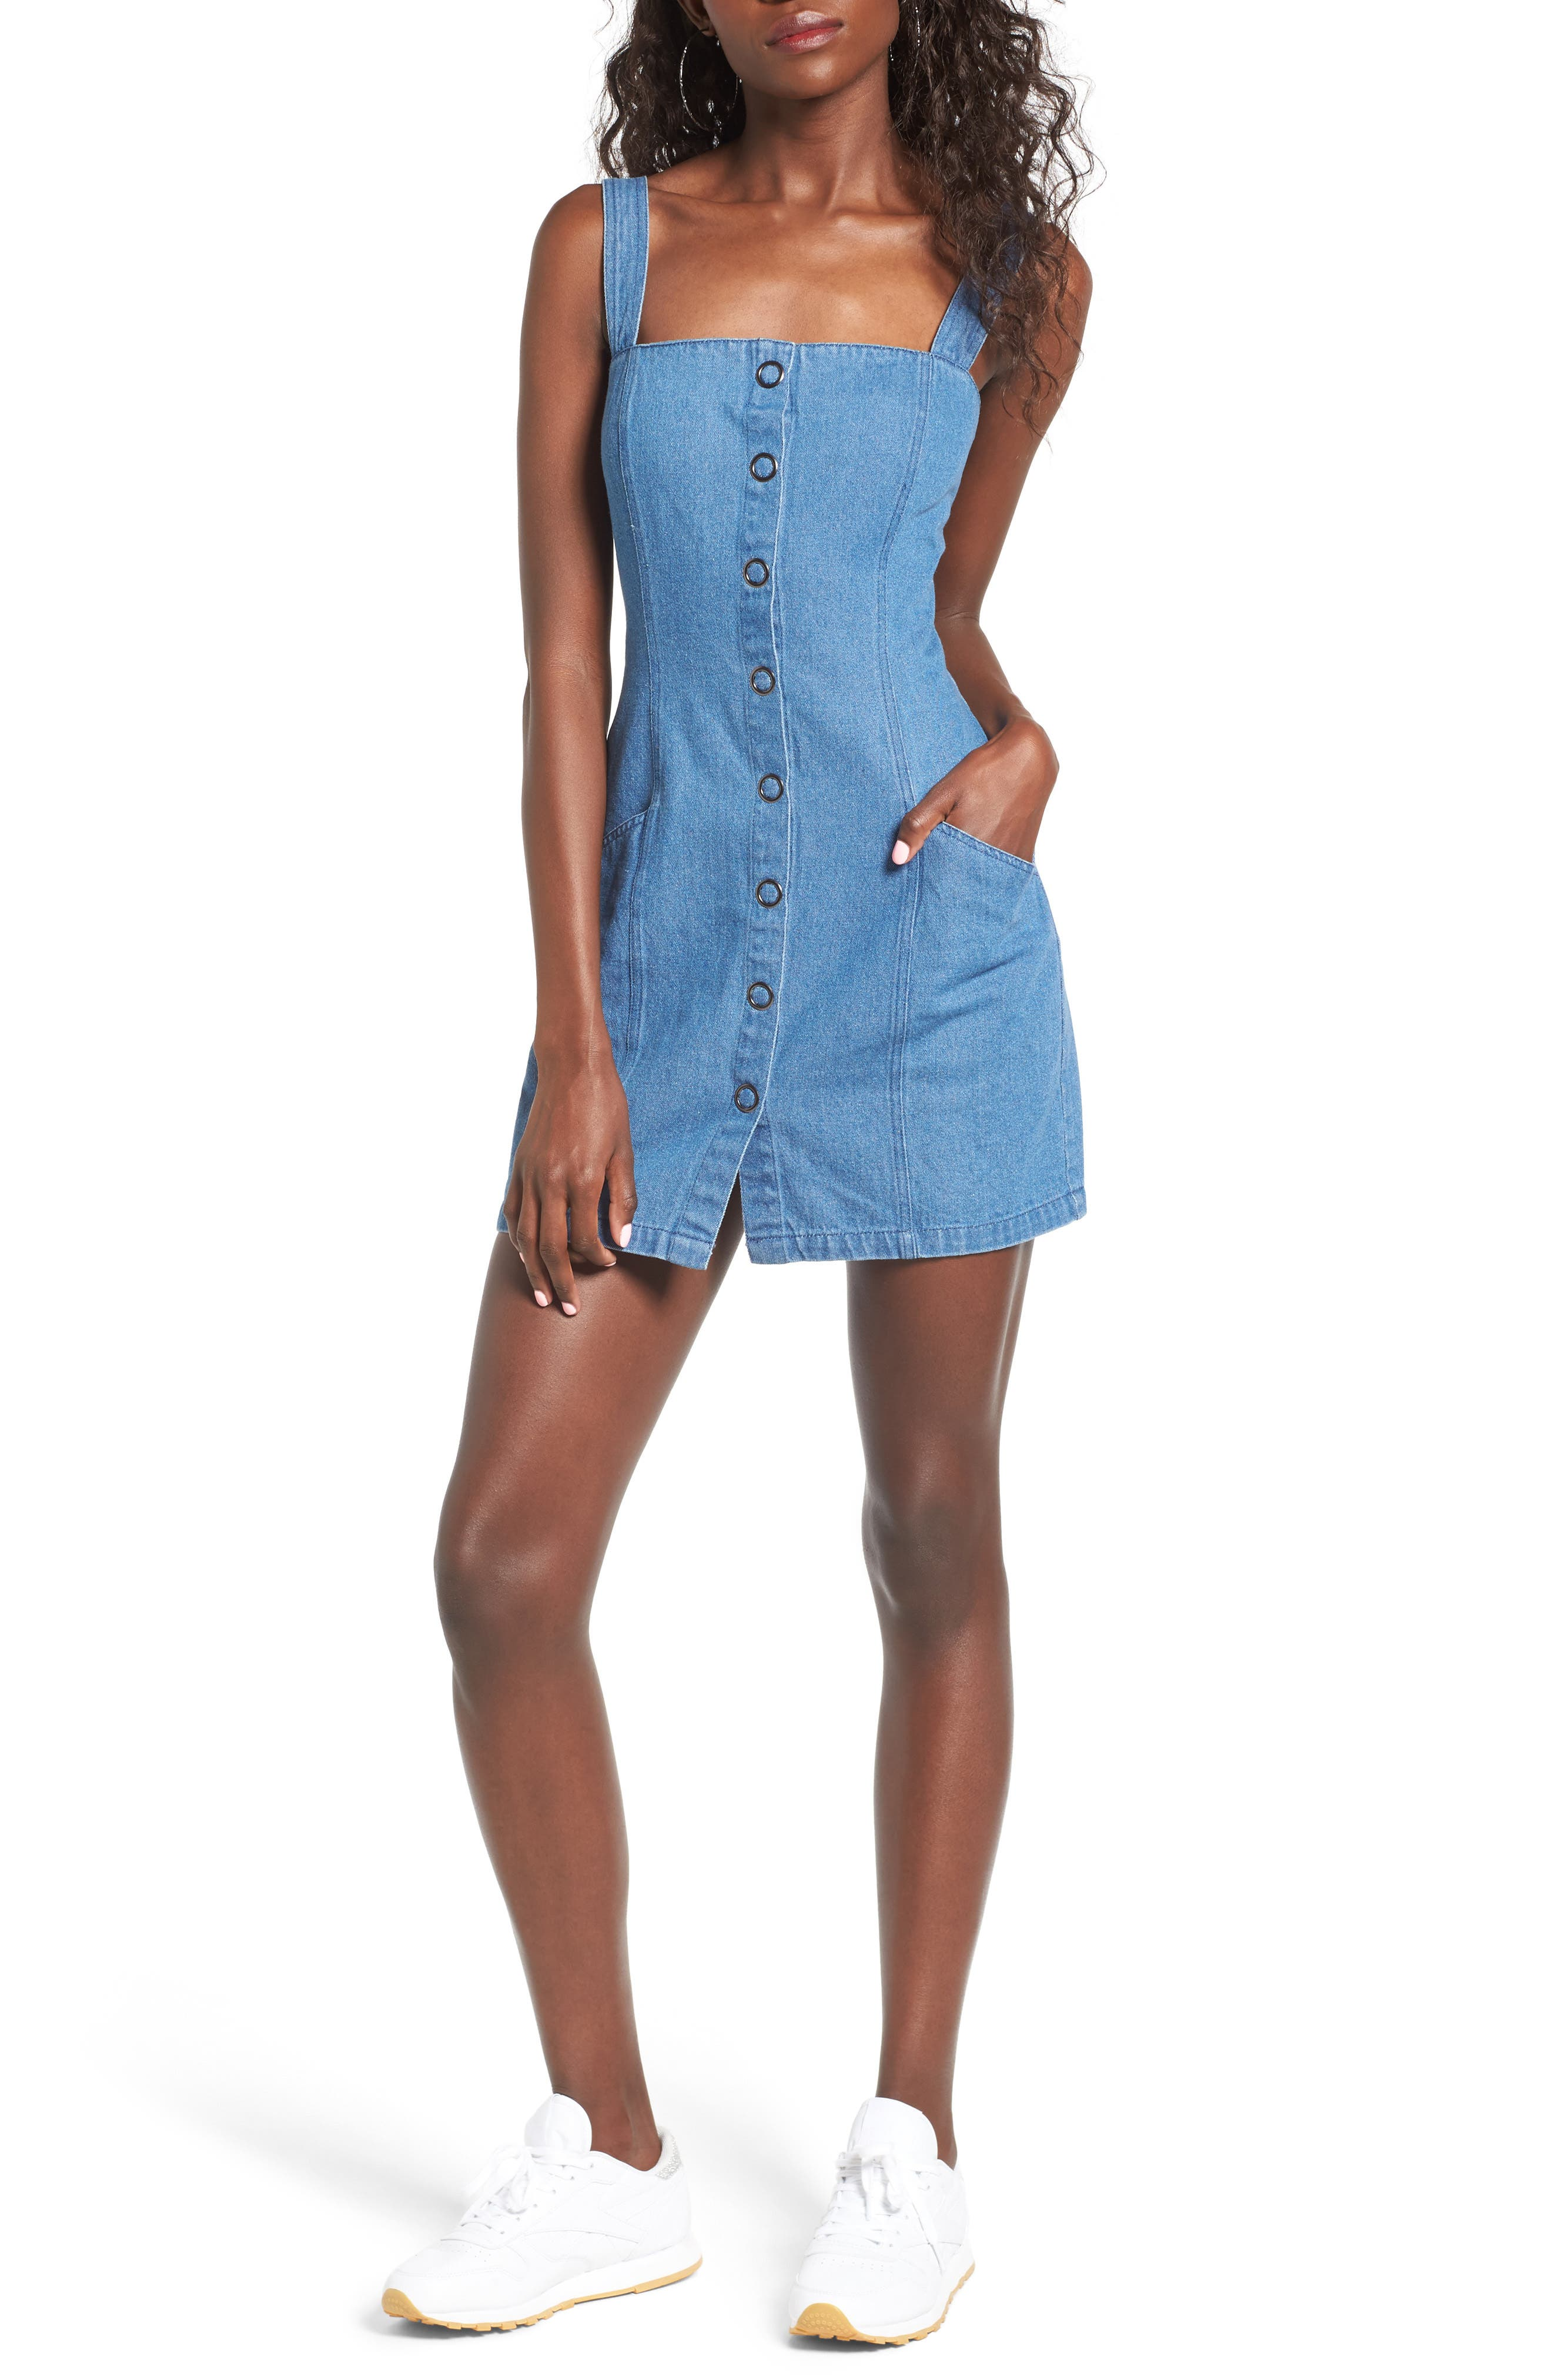 The Fifth Label Vagabond Denim Dress